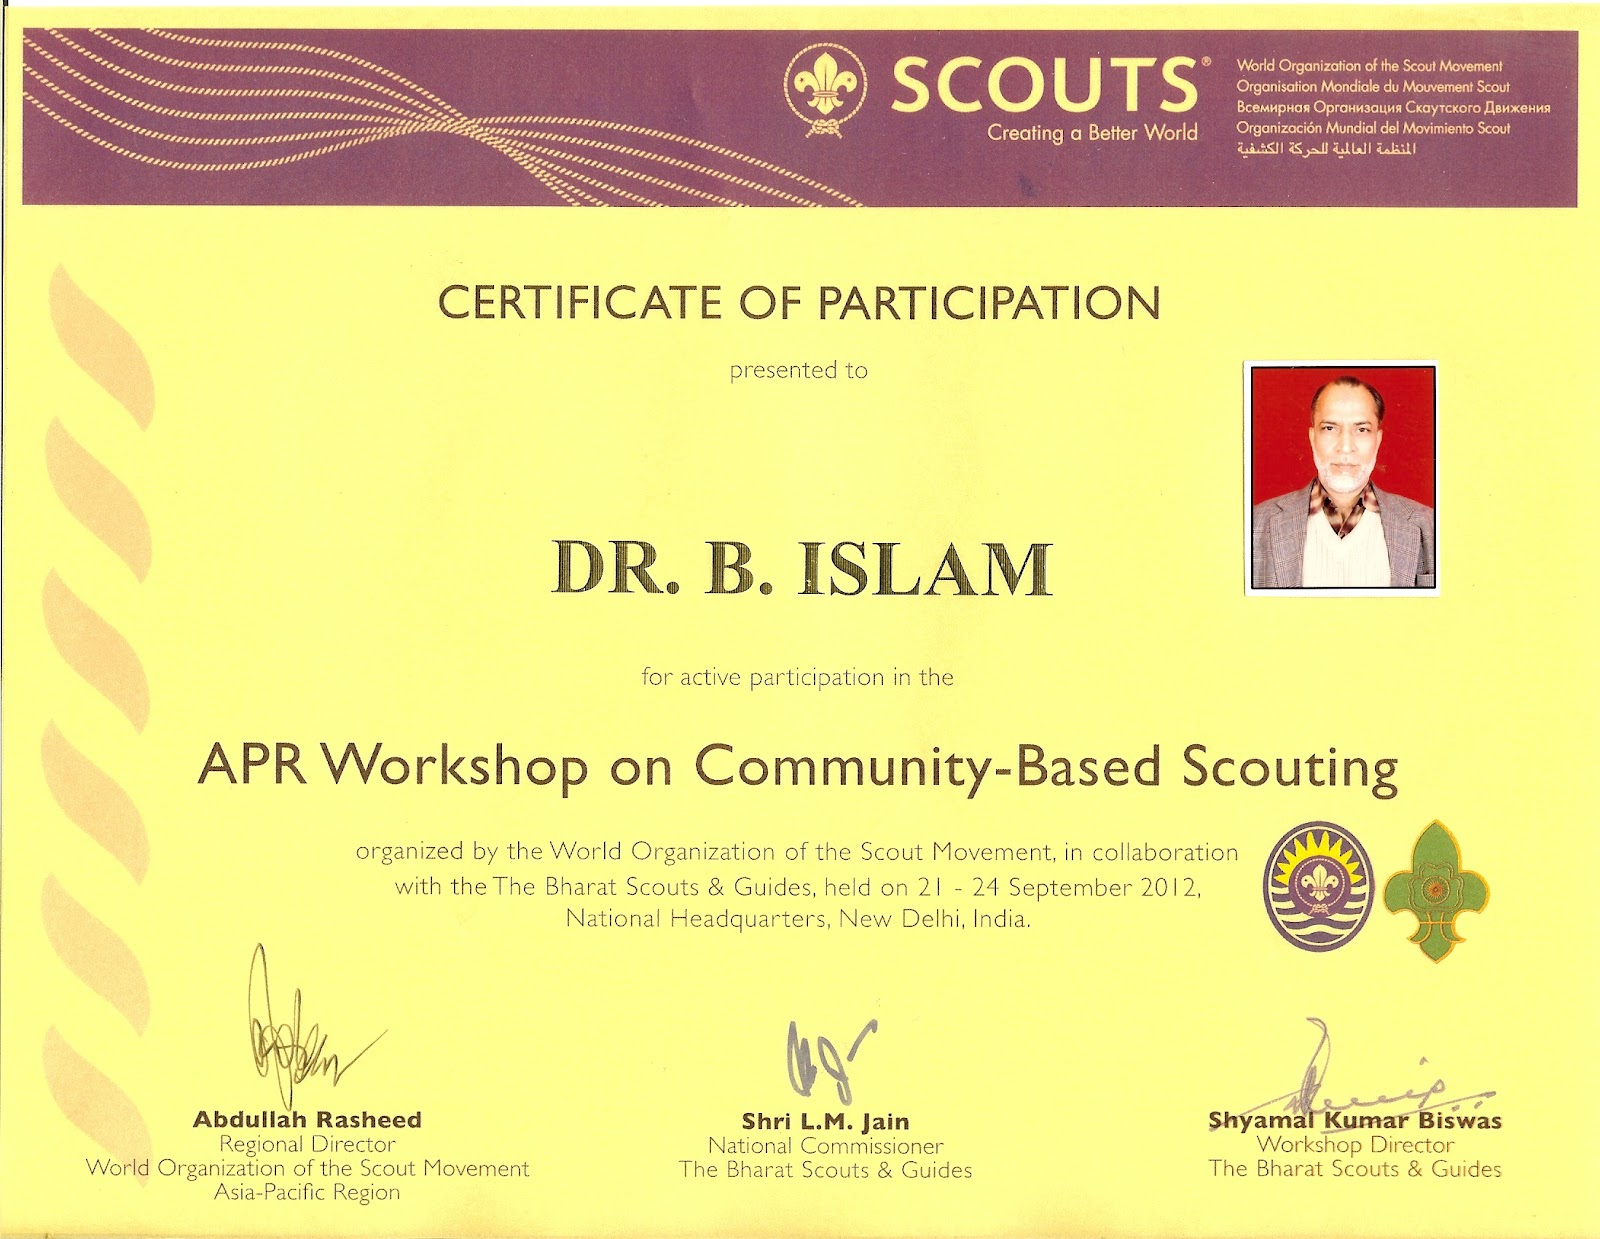 template for certificate of participation in workshop - kendriya vidyalaya sangathan bharat scouts guides my